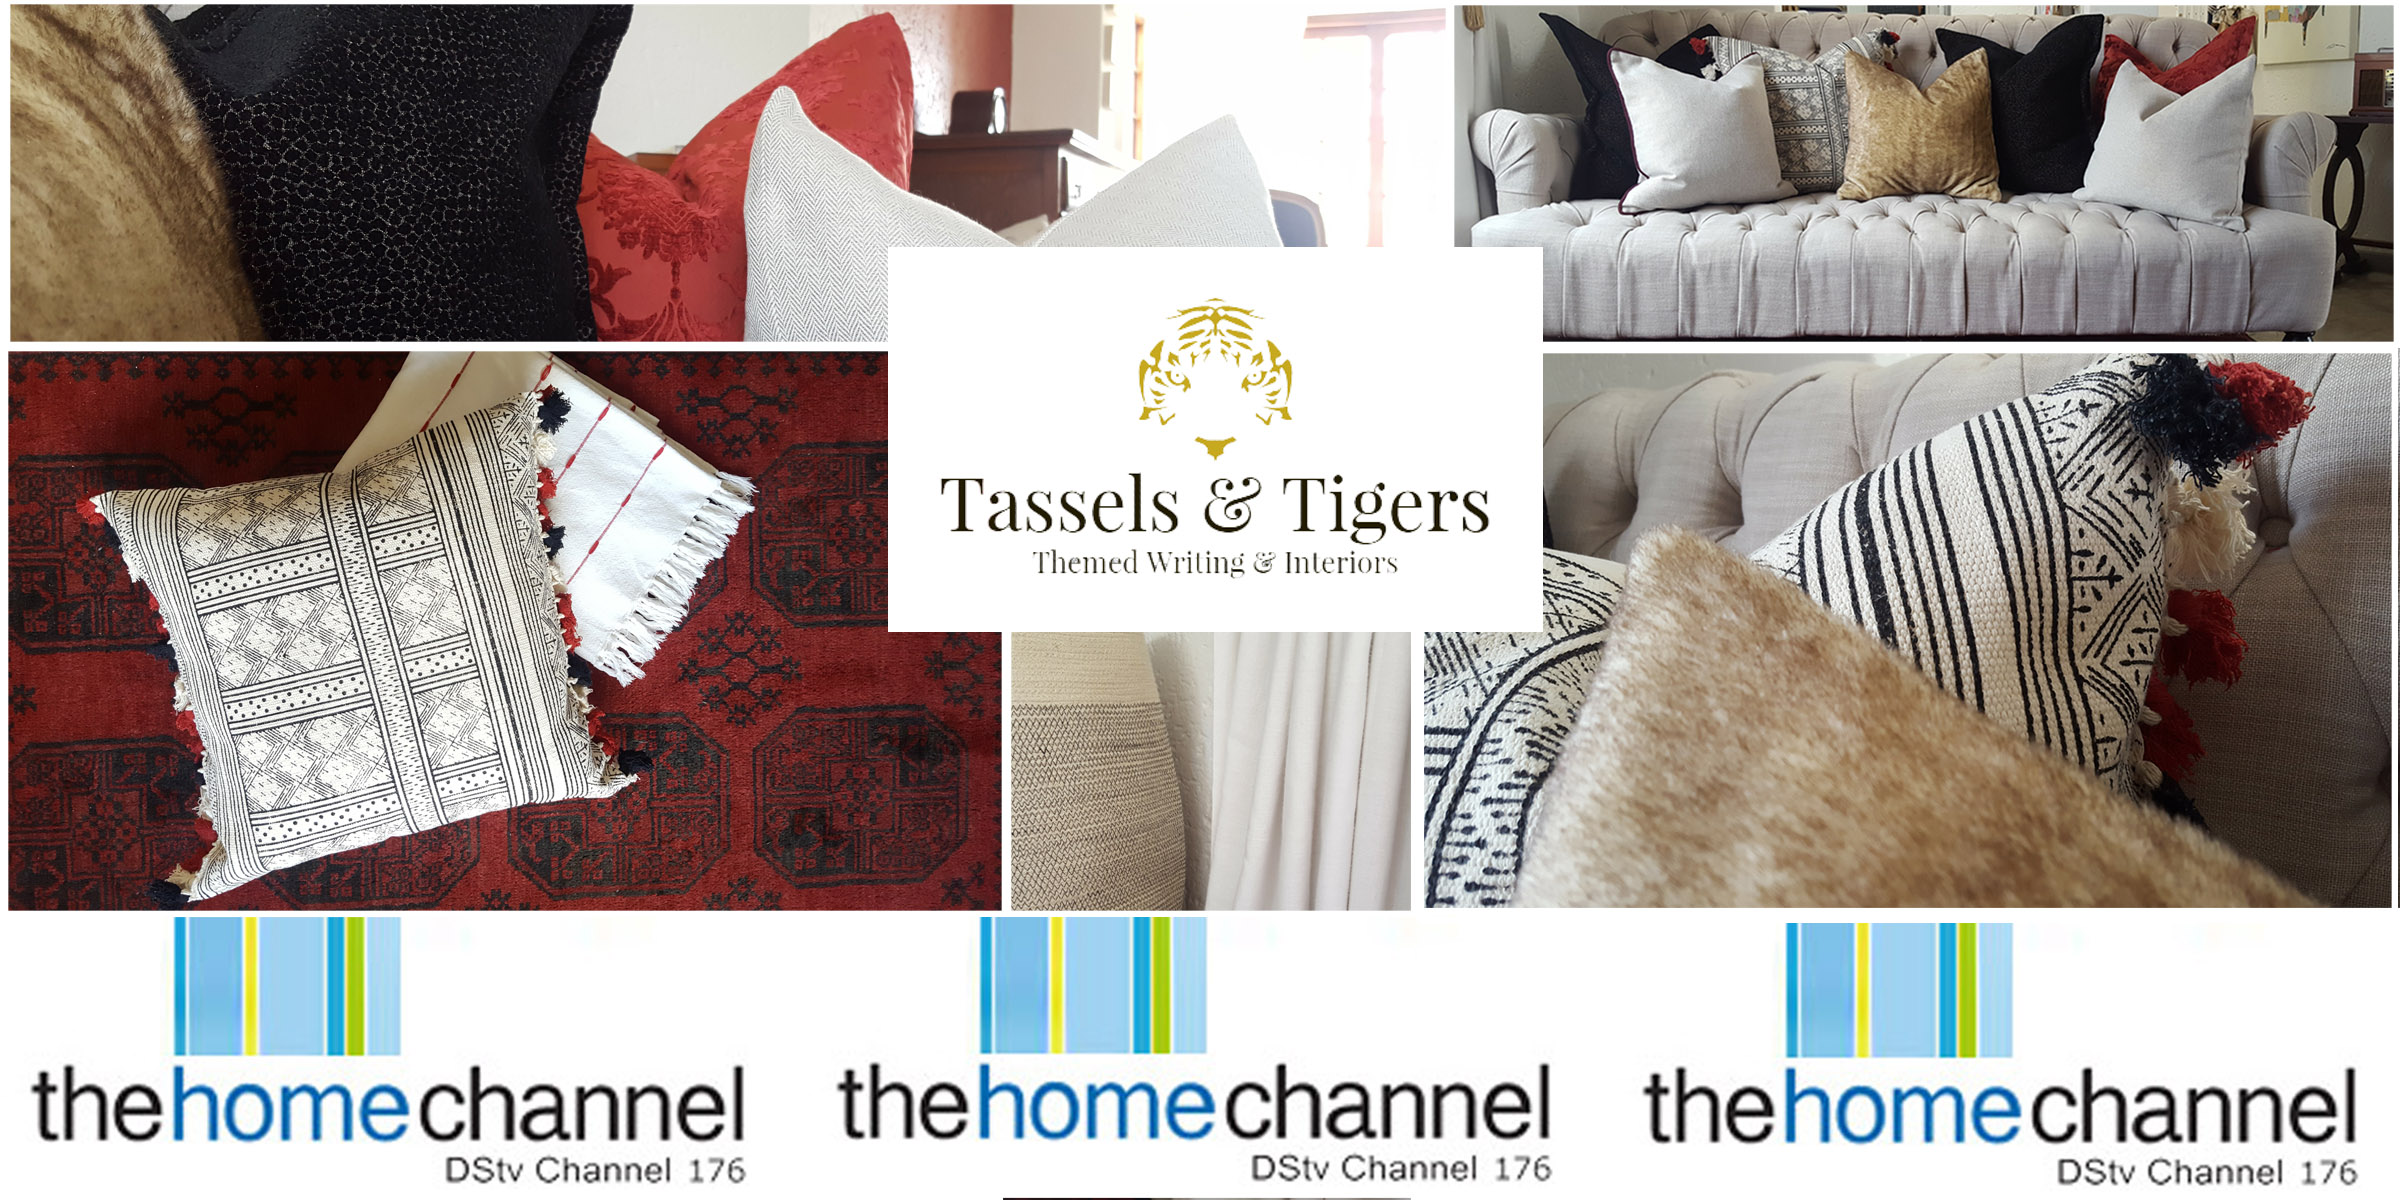 Tassels & Tigers Interior Design and Decor Lounge as seen on the Home Channel